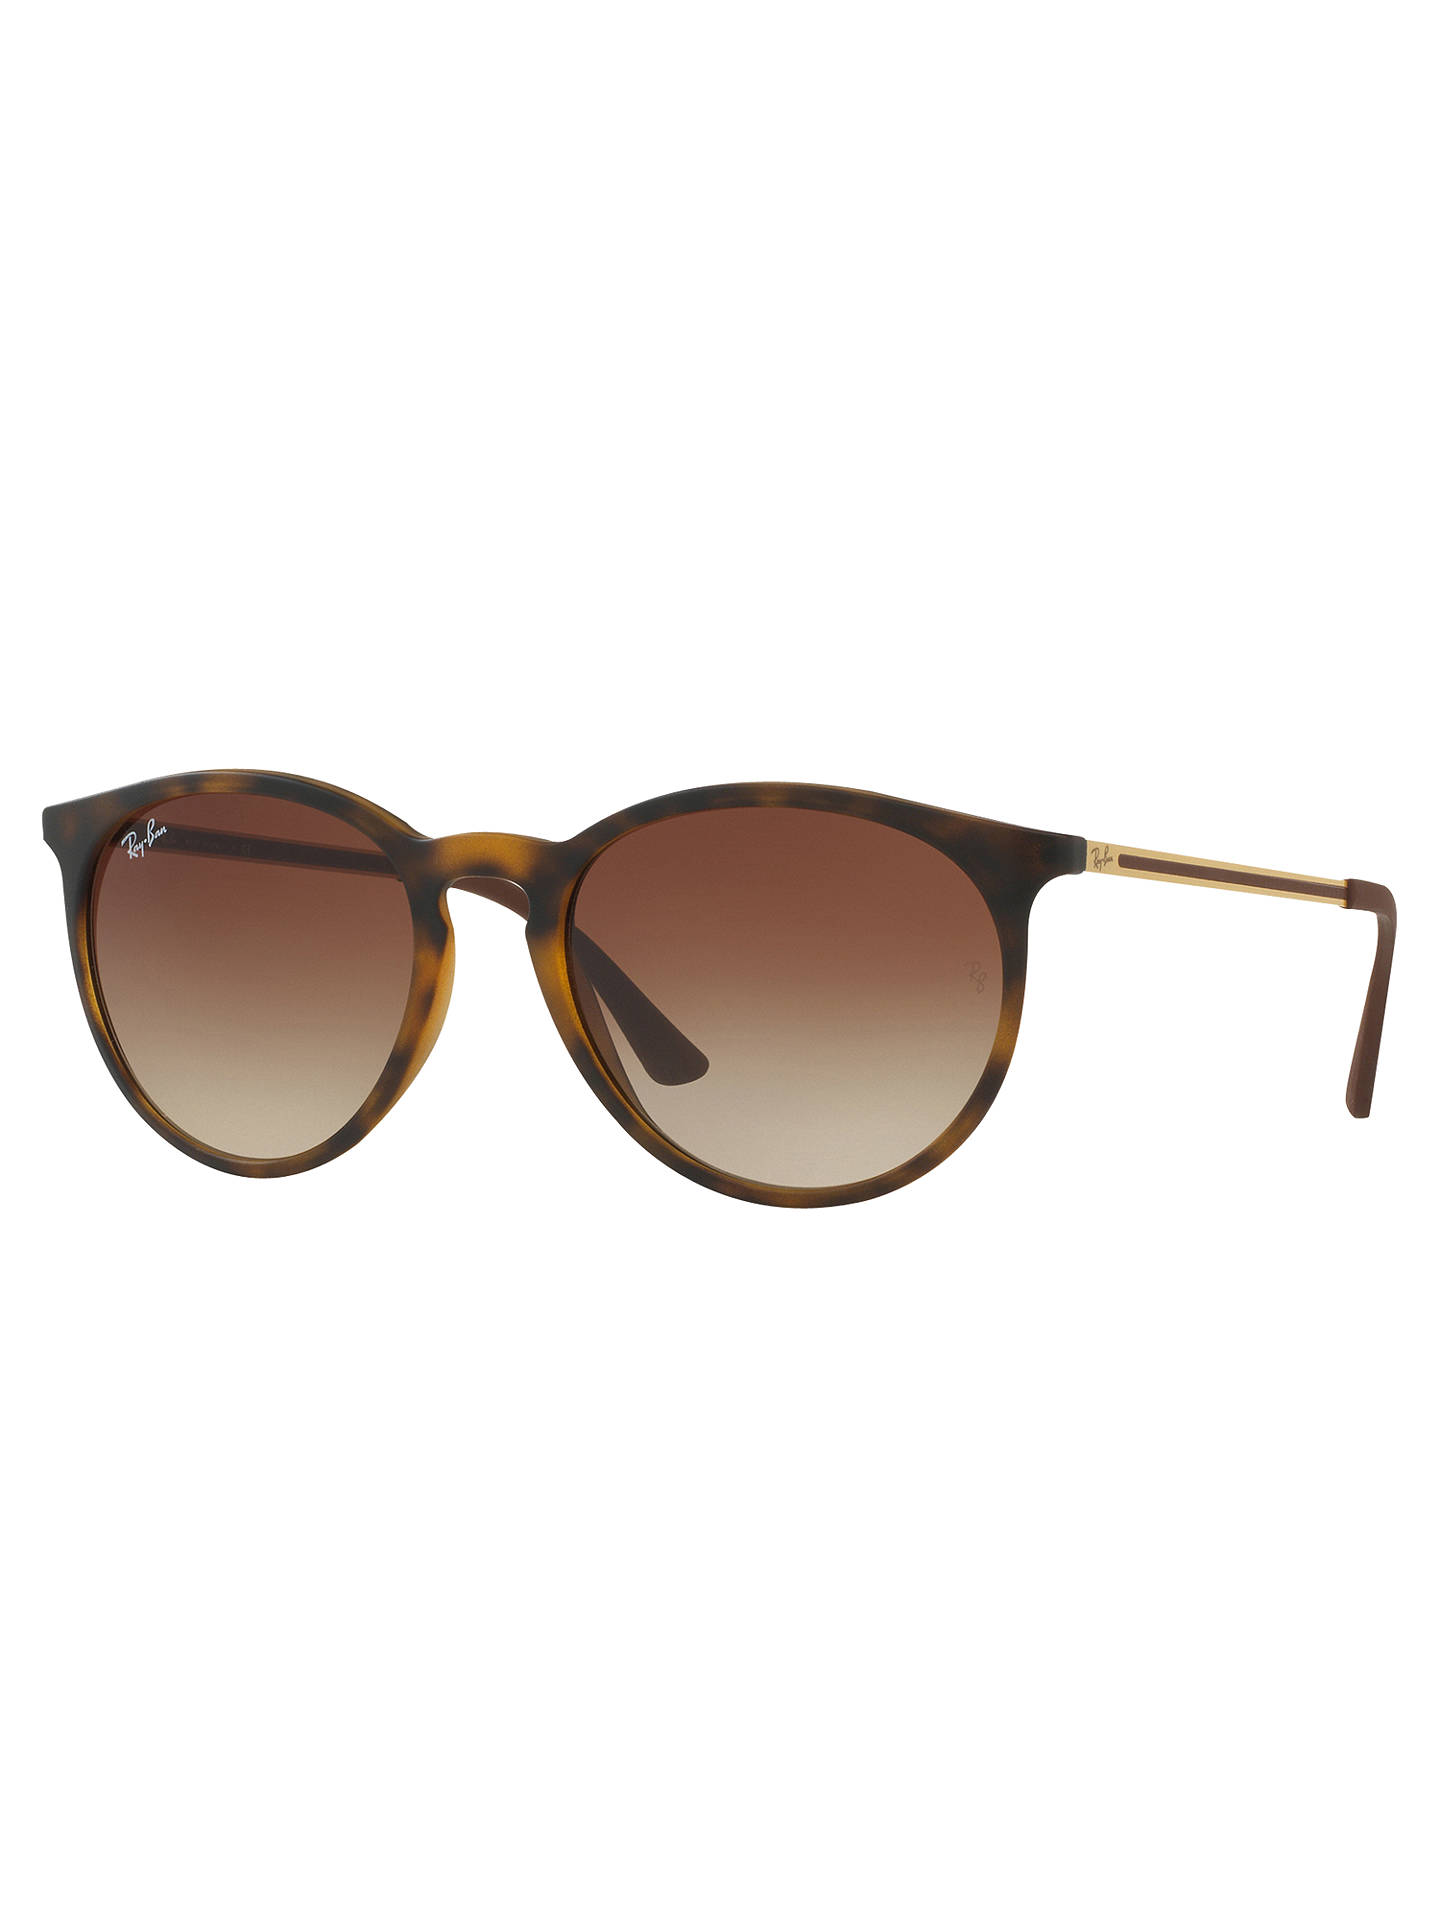 843df209540 Ray-Ban RB4274 Oval Sunglasses at John Lewis   Partners